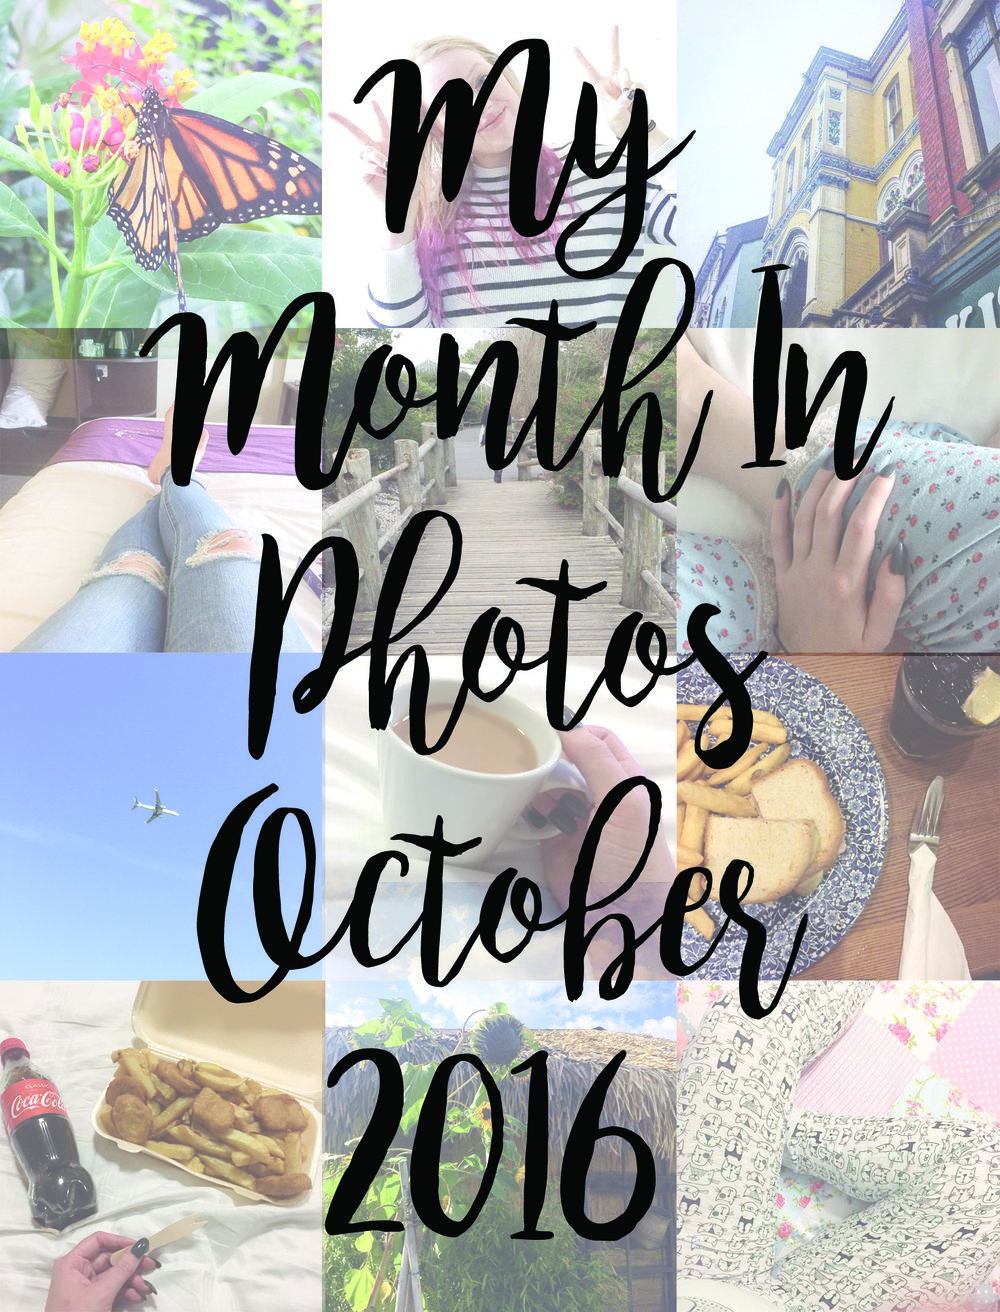 My month in photos - October 2016.